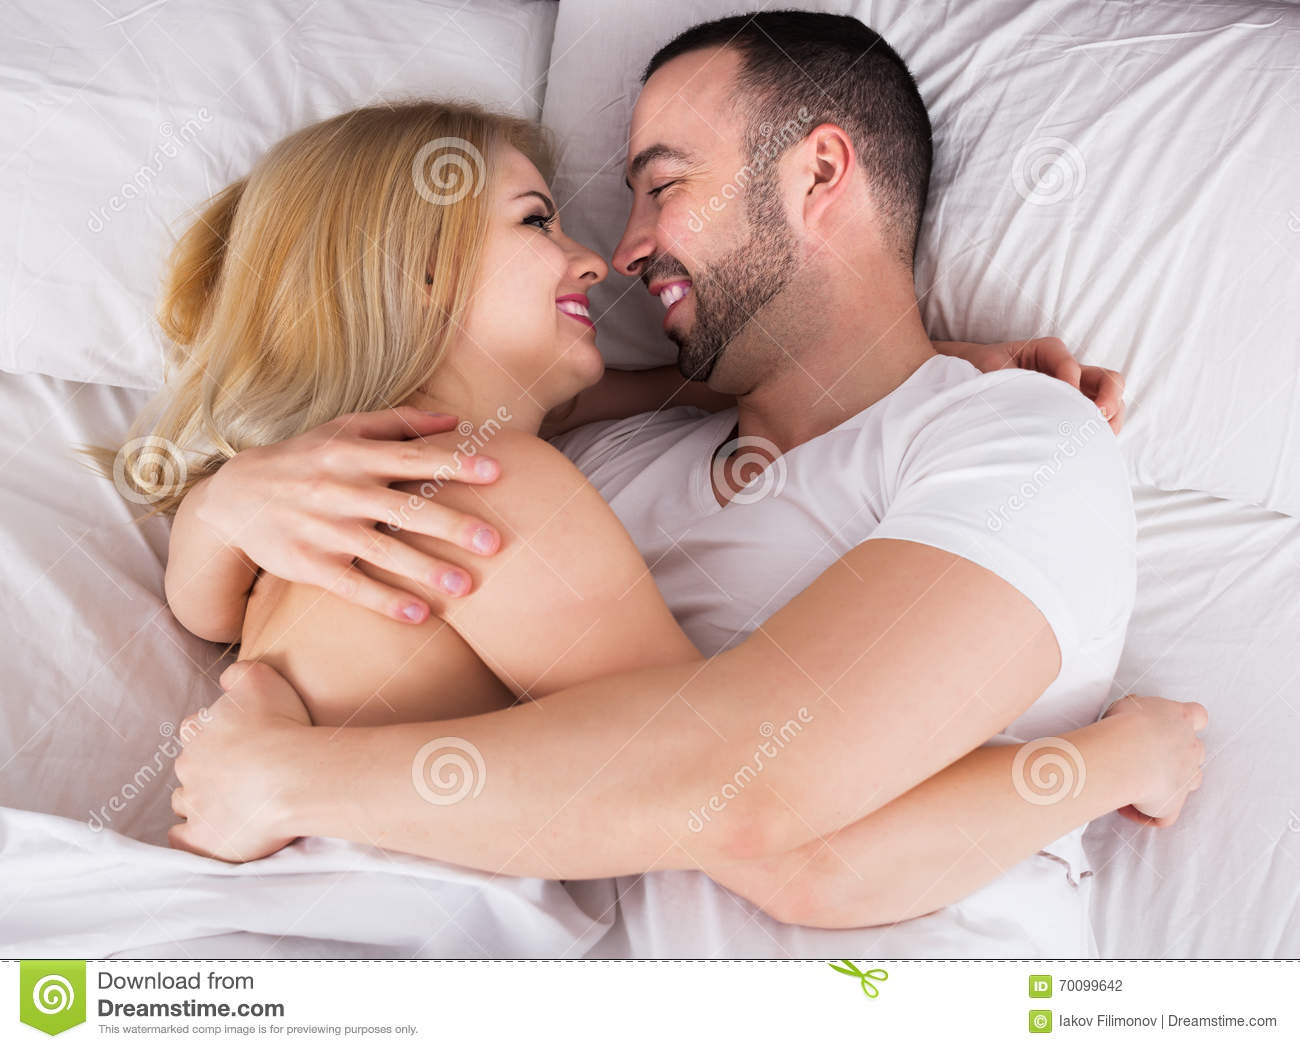 married couple making love